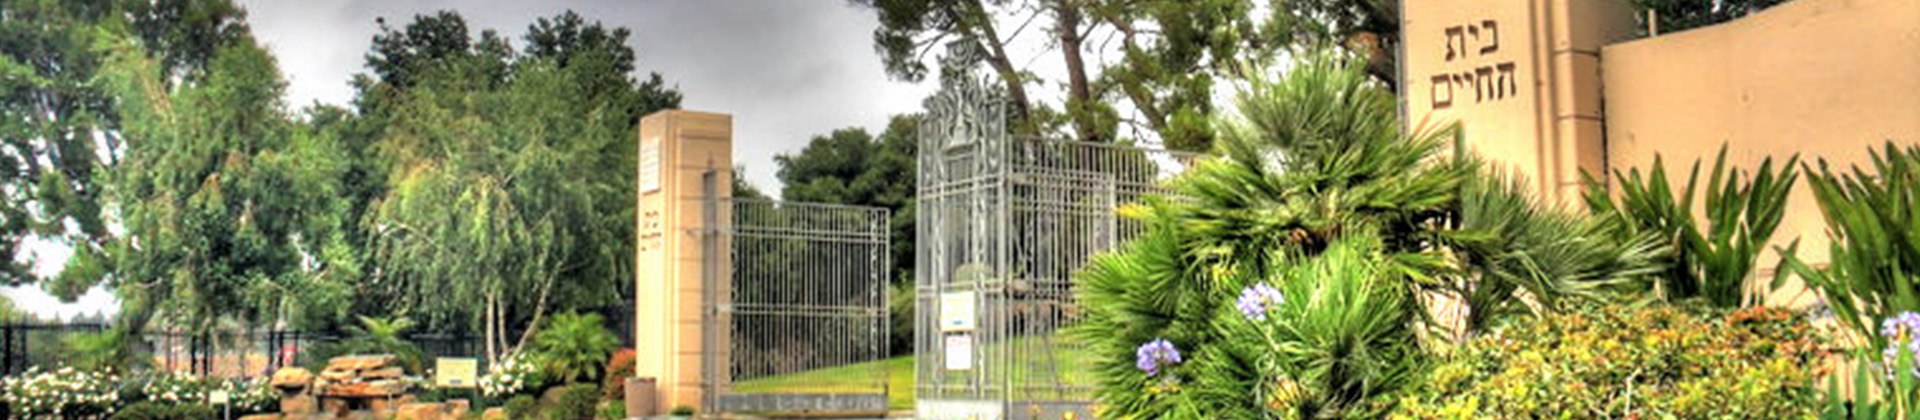 Funeral customs entrance gates at mount sinai hollywood hills a special place for jewish funeral customs izmirmasajfo Images